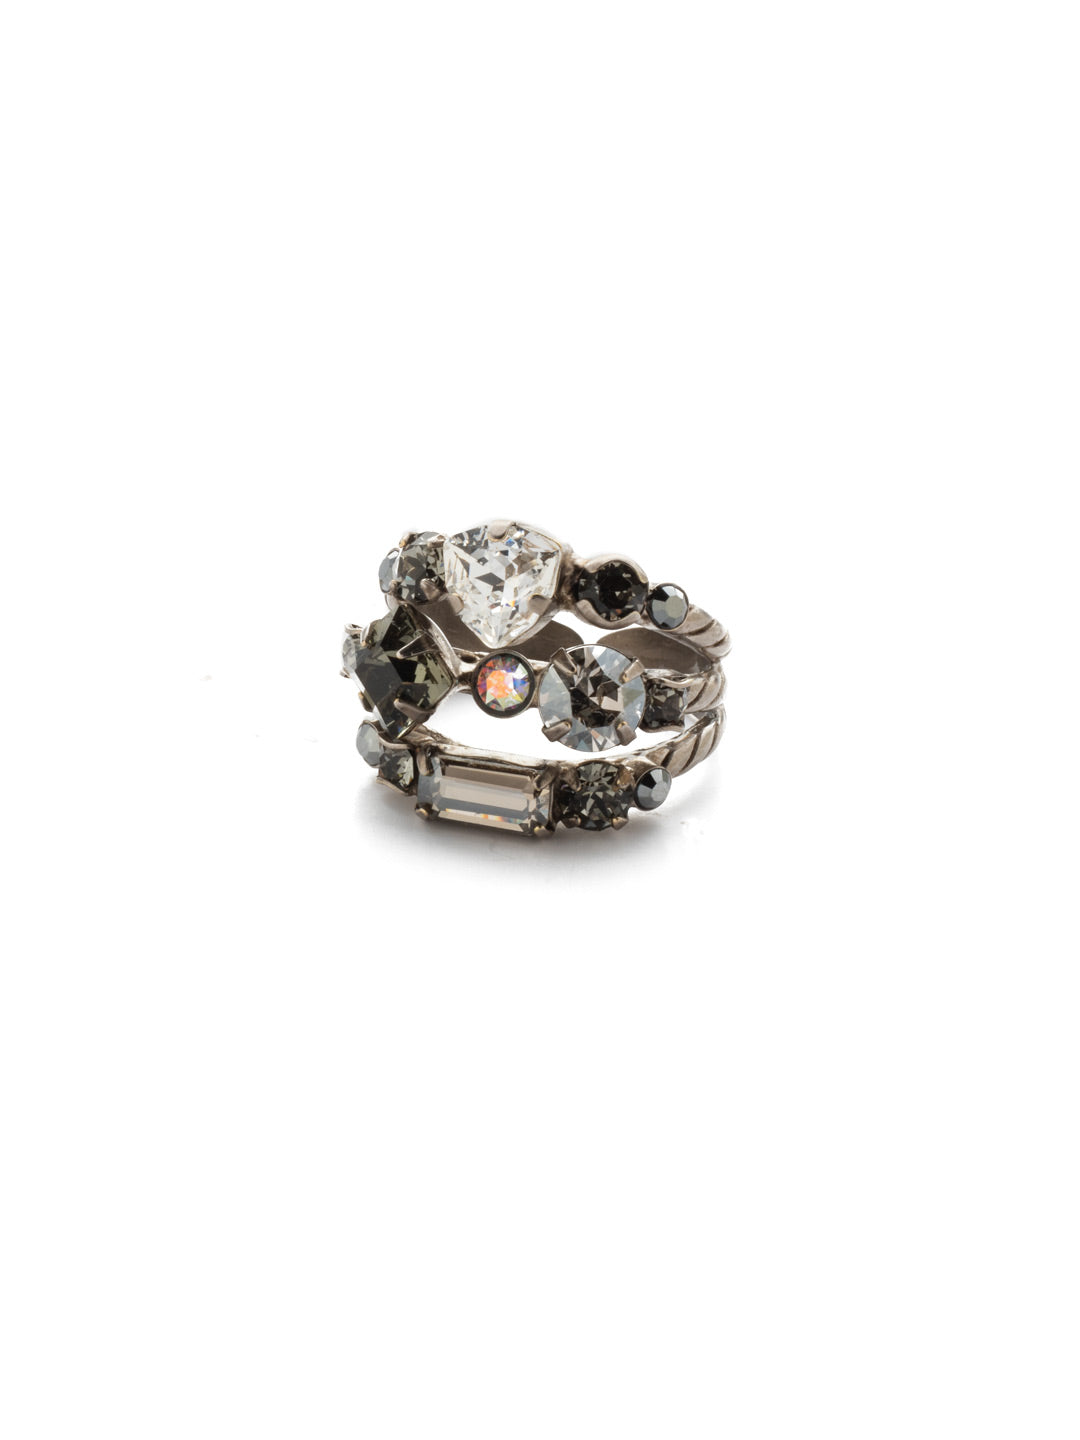 Sedge Stacked Stacked Ring - RDX1ASCRO